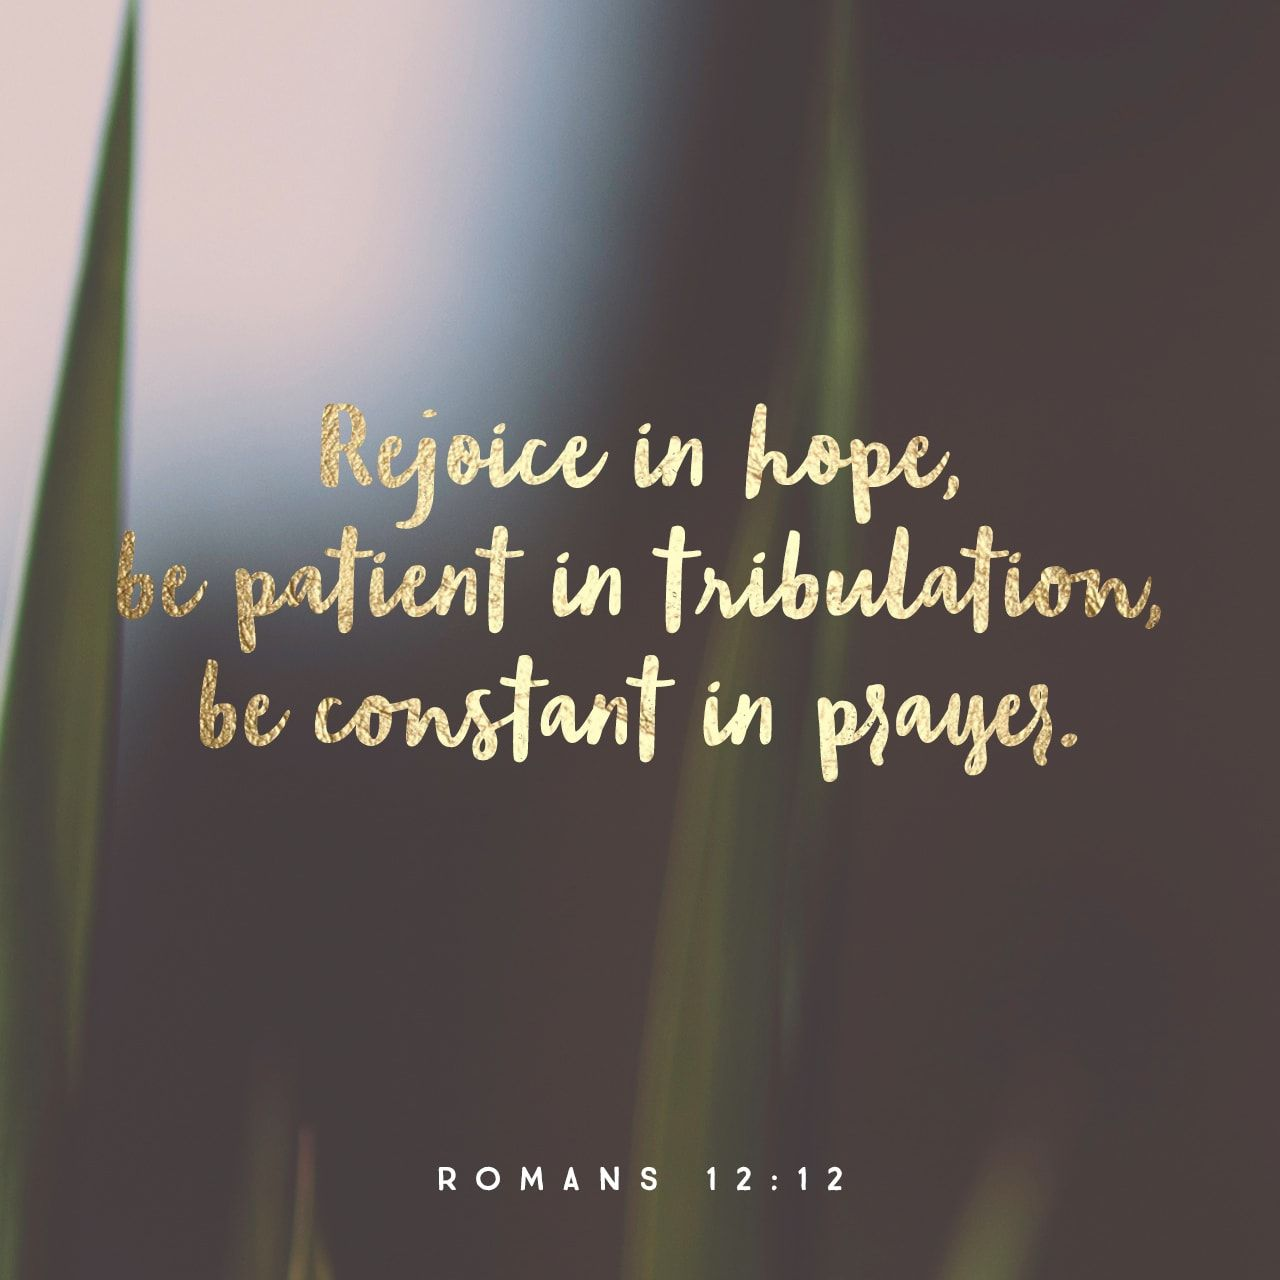 Biblical Quotes About Friendship Rejoice In Hope Be Patient In Tribulation Be Constant In Prayer